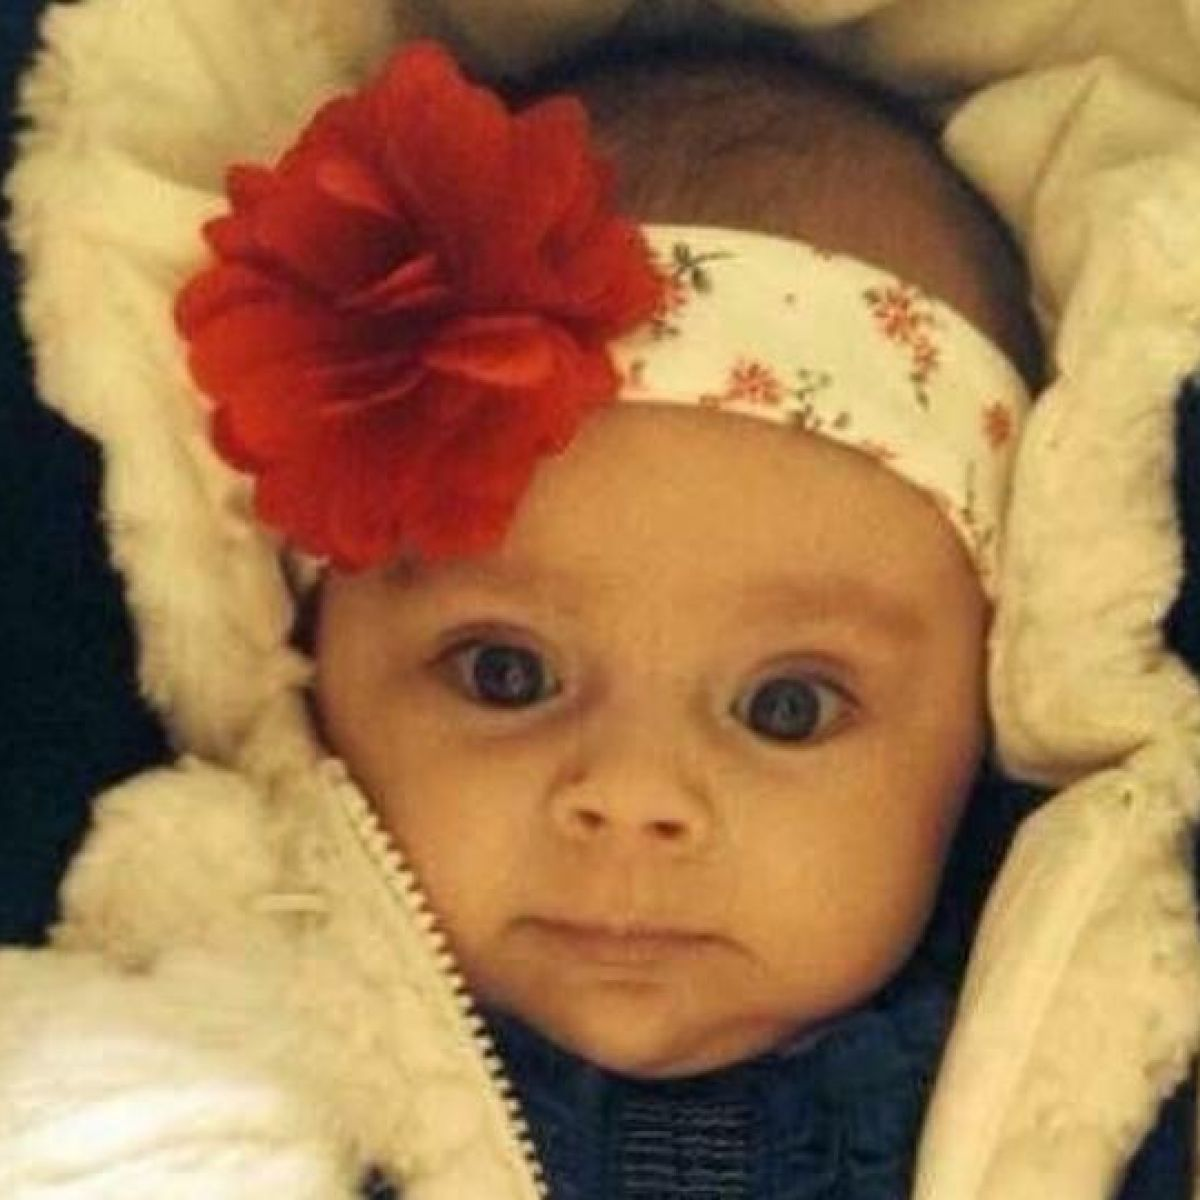 Baby died from brain injury caused by 'violent shaking